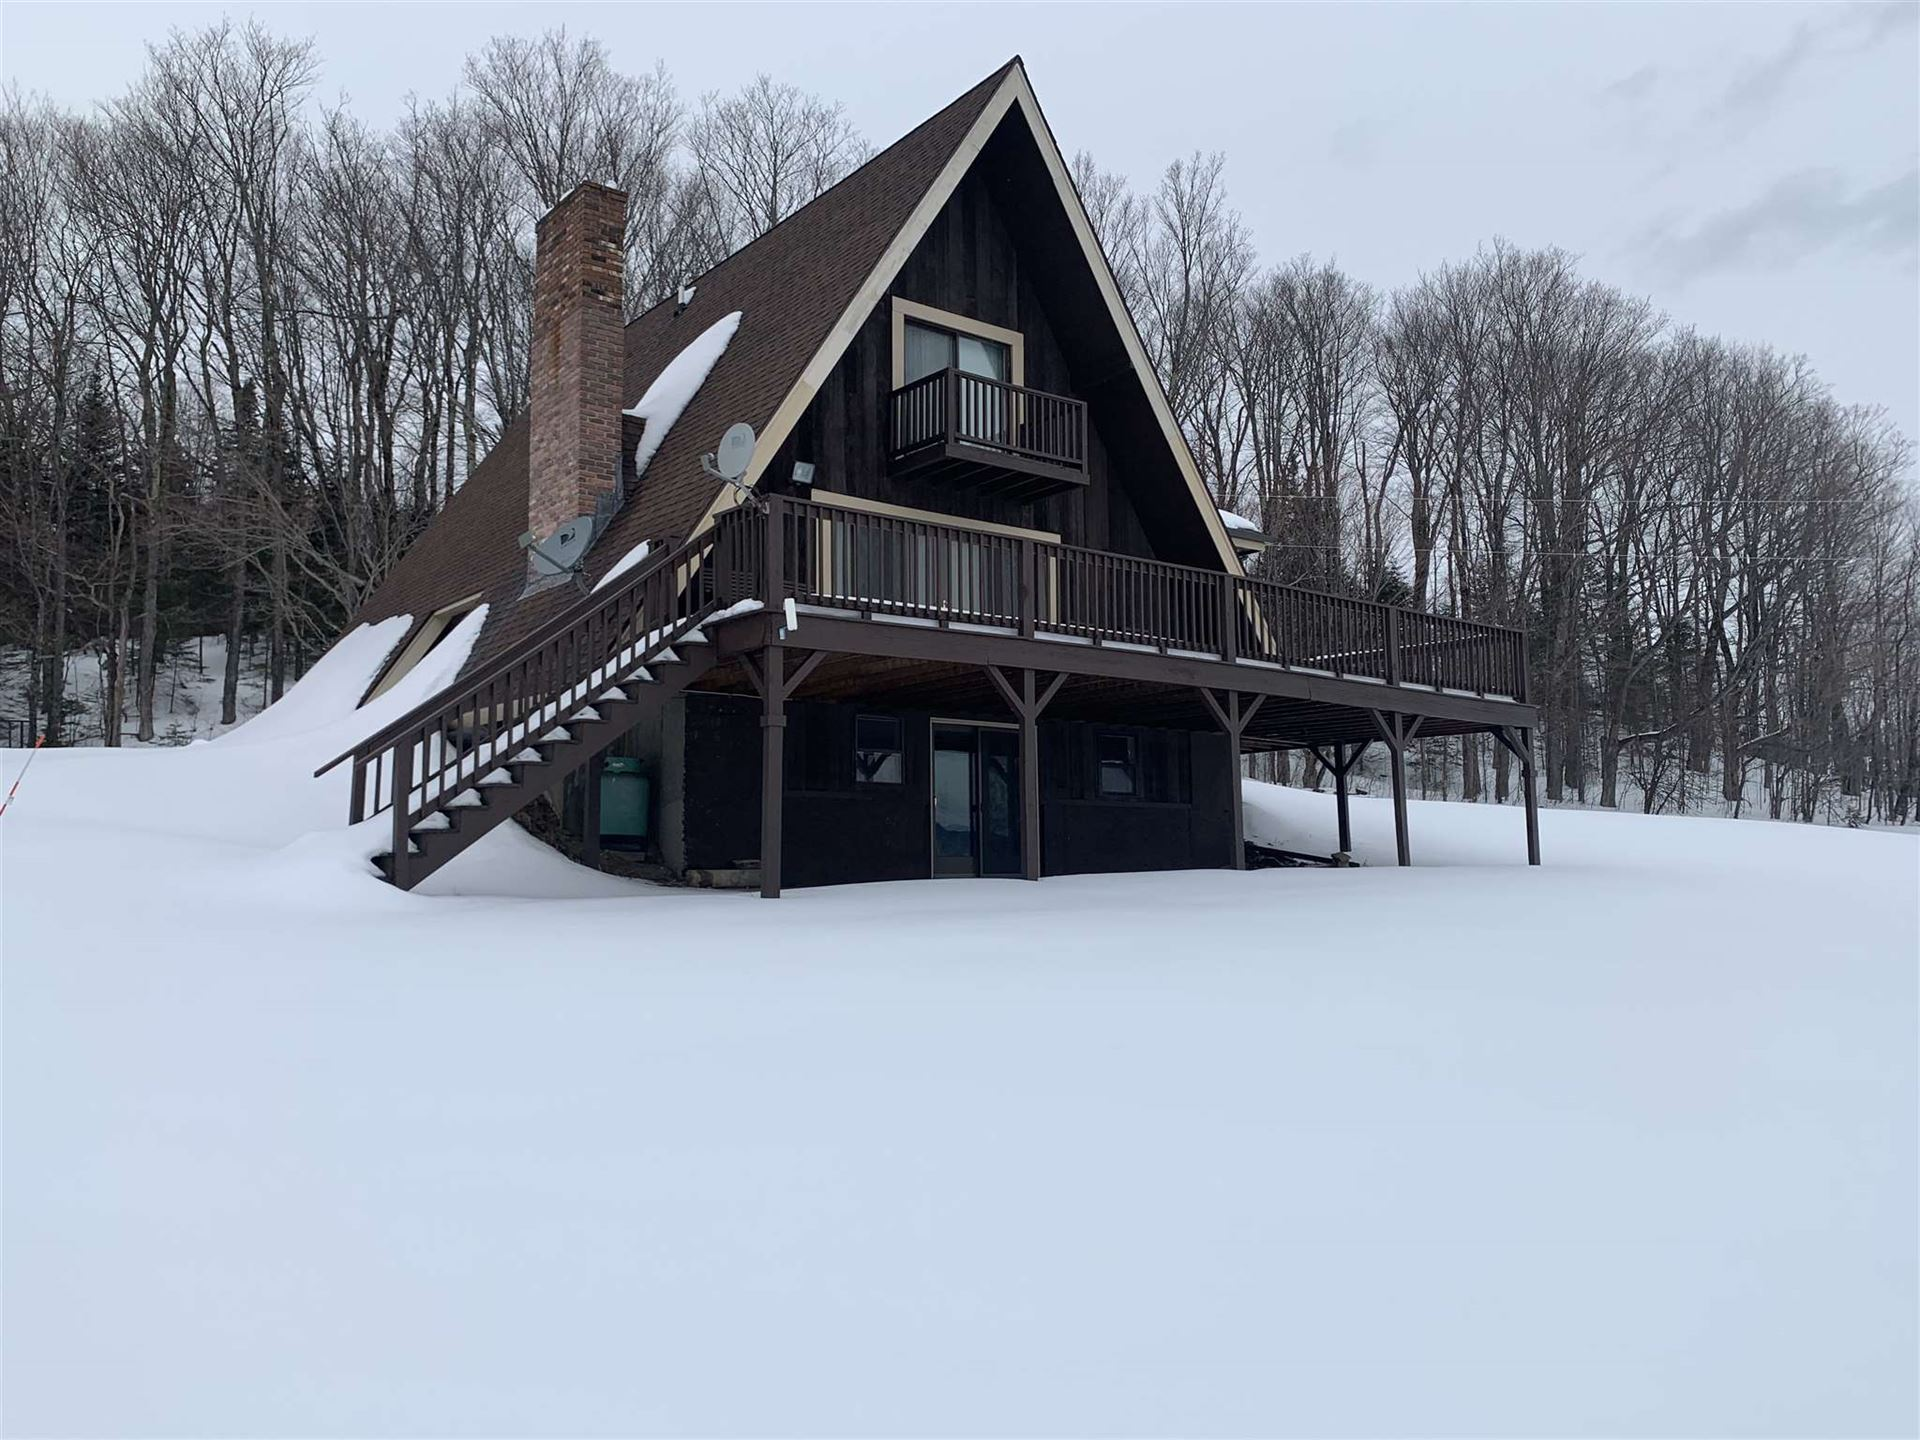 43 Forbes Hill, Colebrook, NH 03576 - MLS#: 4849223